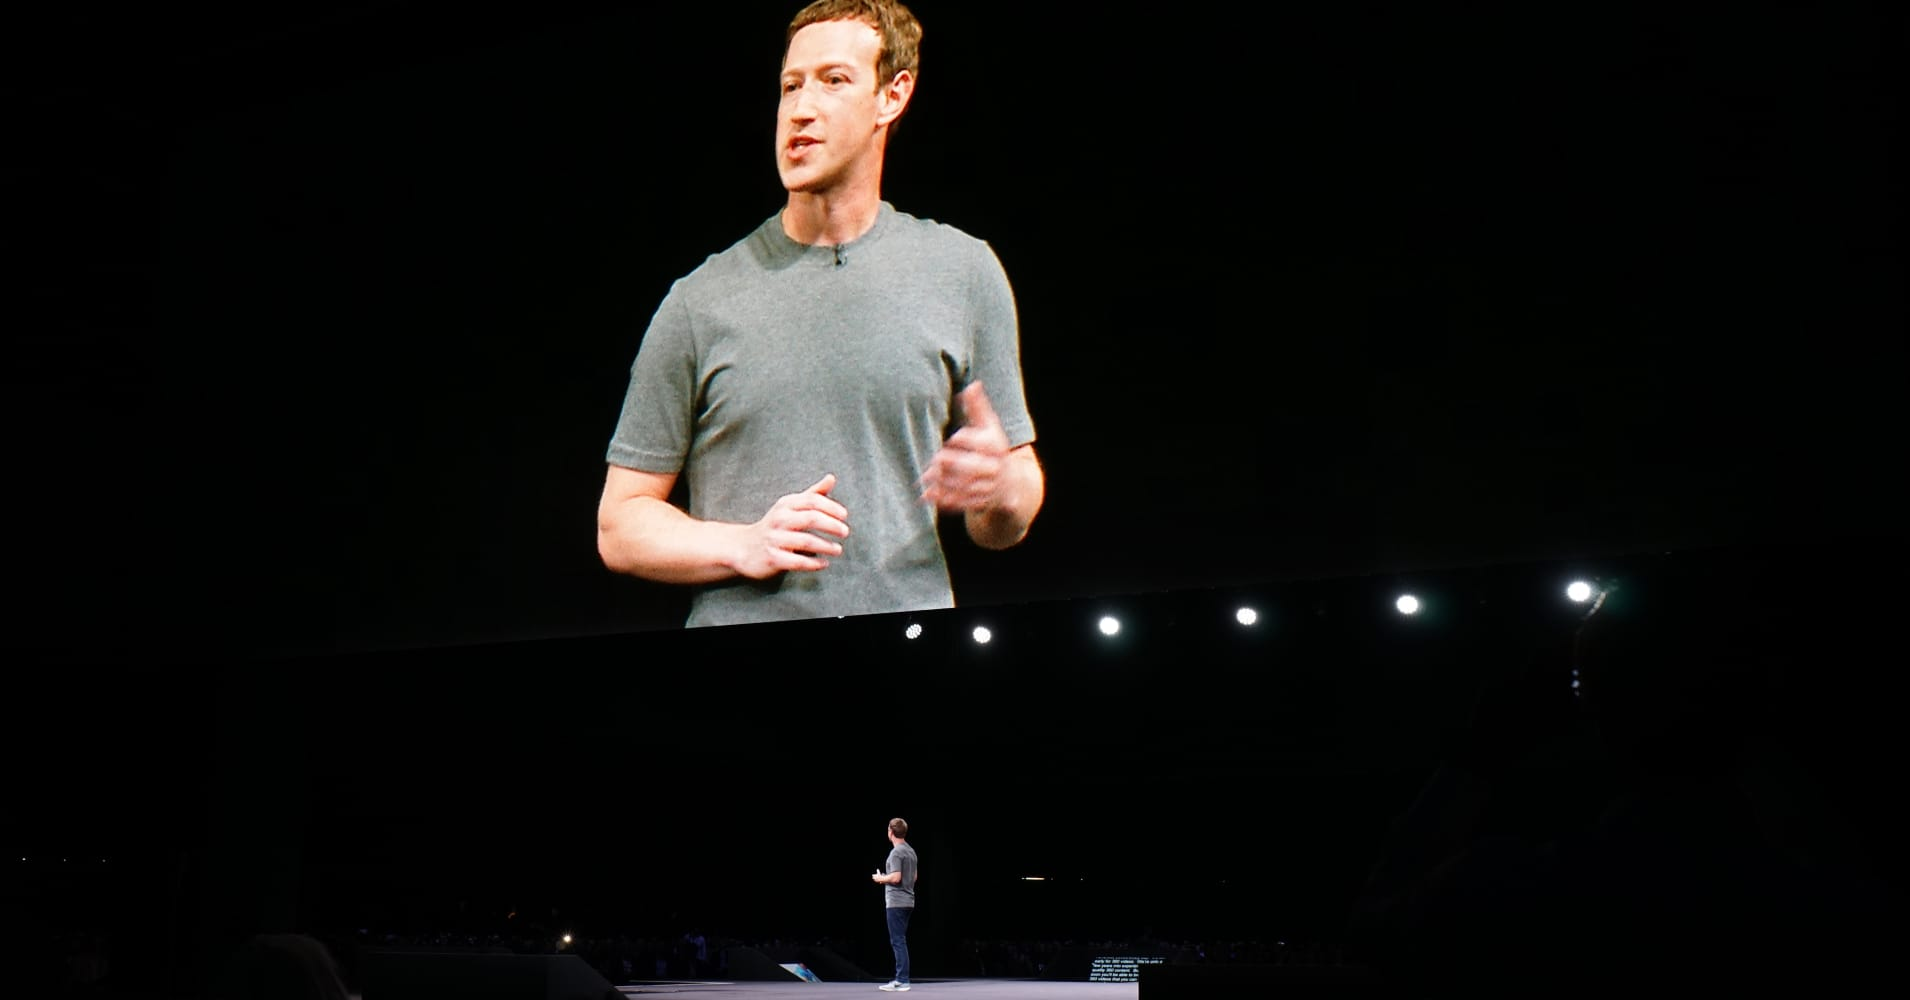 Facebook is using A.I. in ways that go far beyond the M assistant